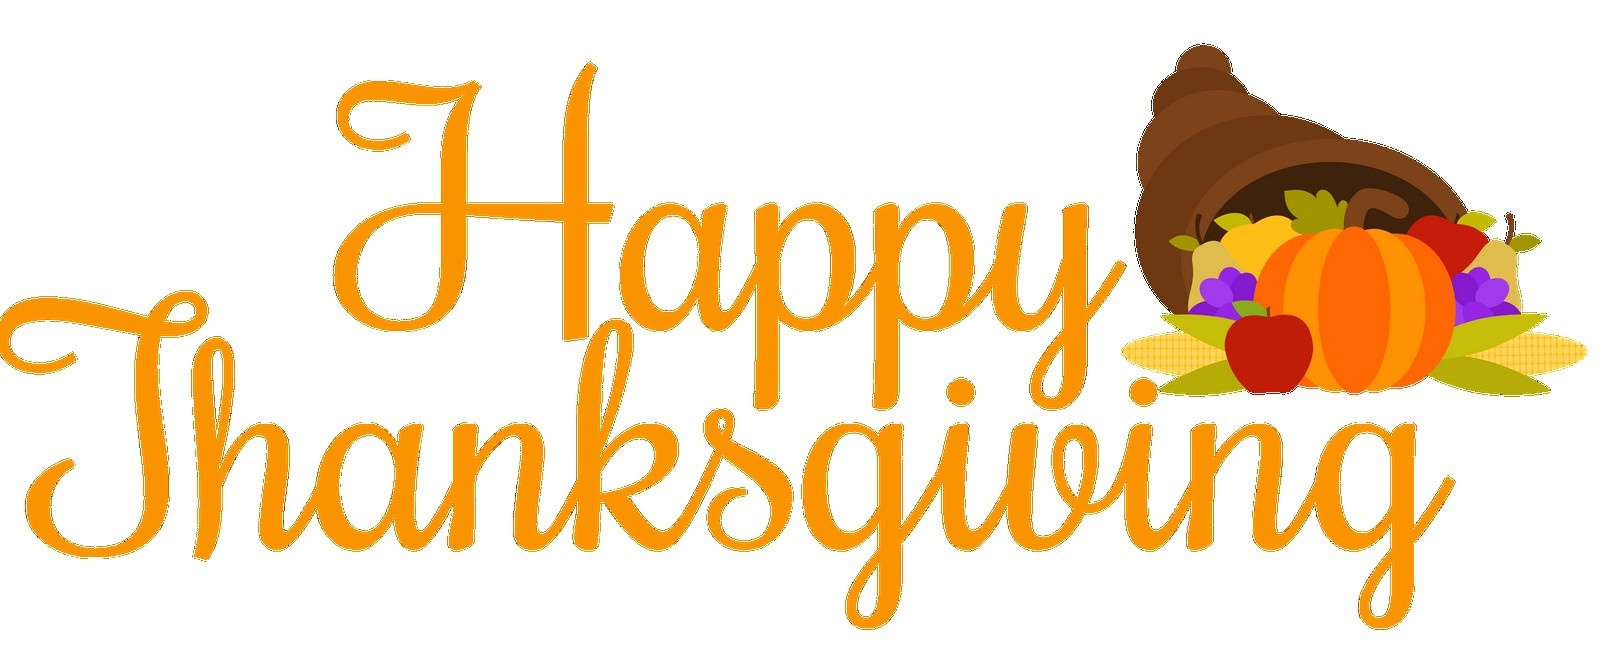 Happy Thanksgiving 2018^ Quotes, Messages, Meme, Images & Pictures - Free Printable Happy Thanksgiving Banner